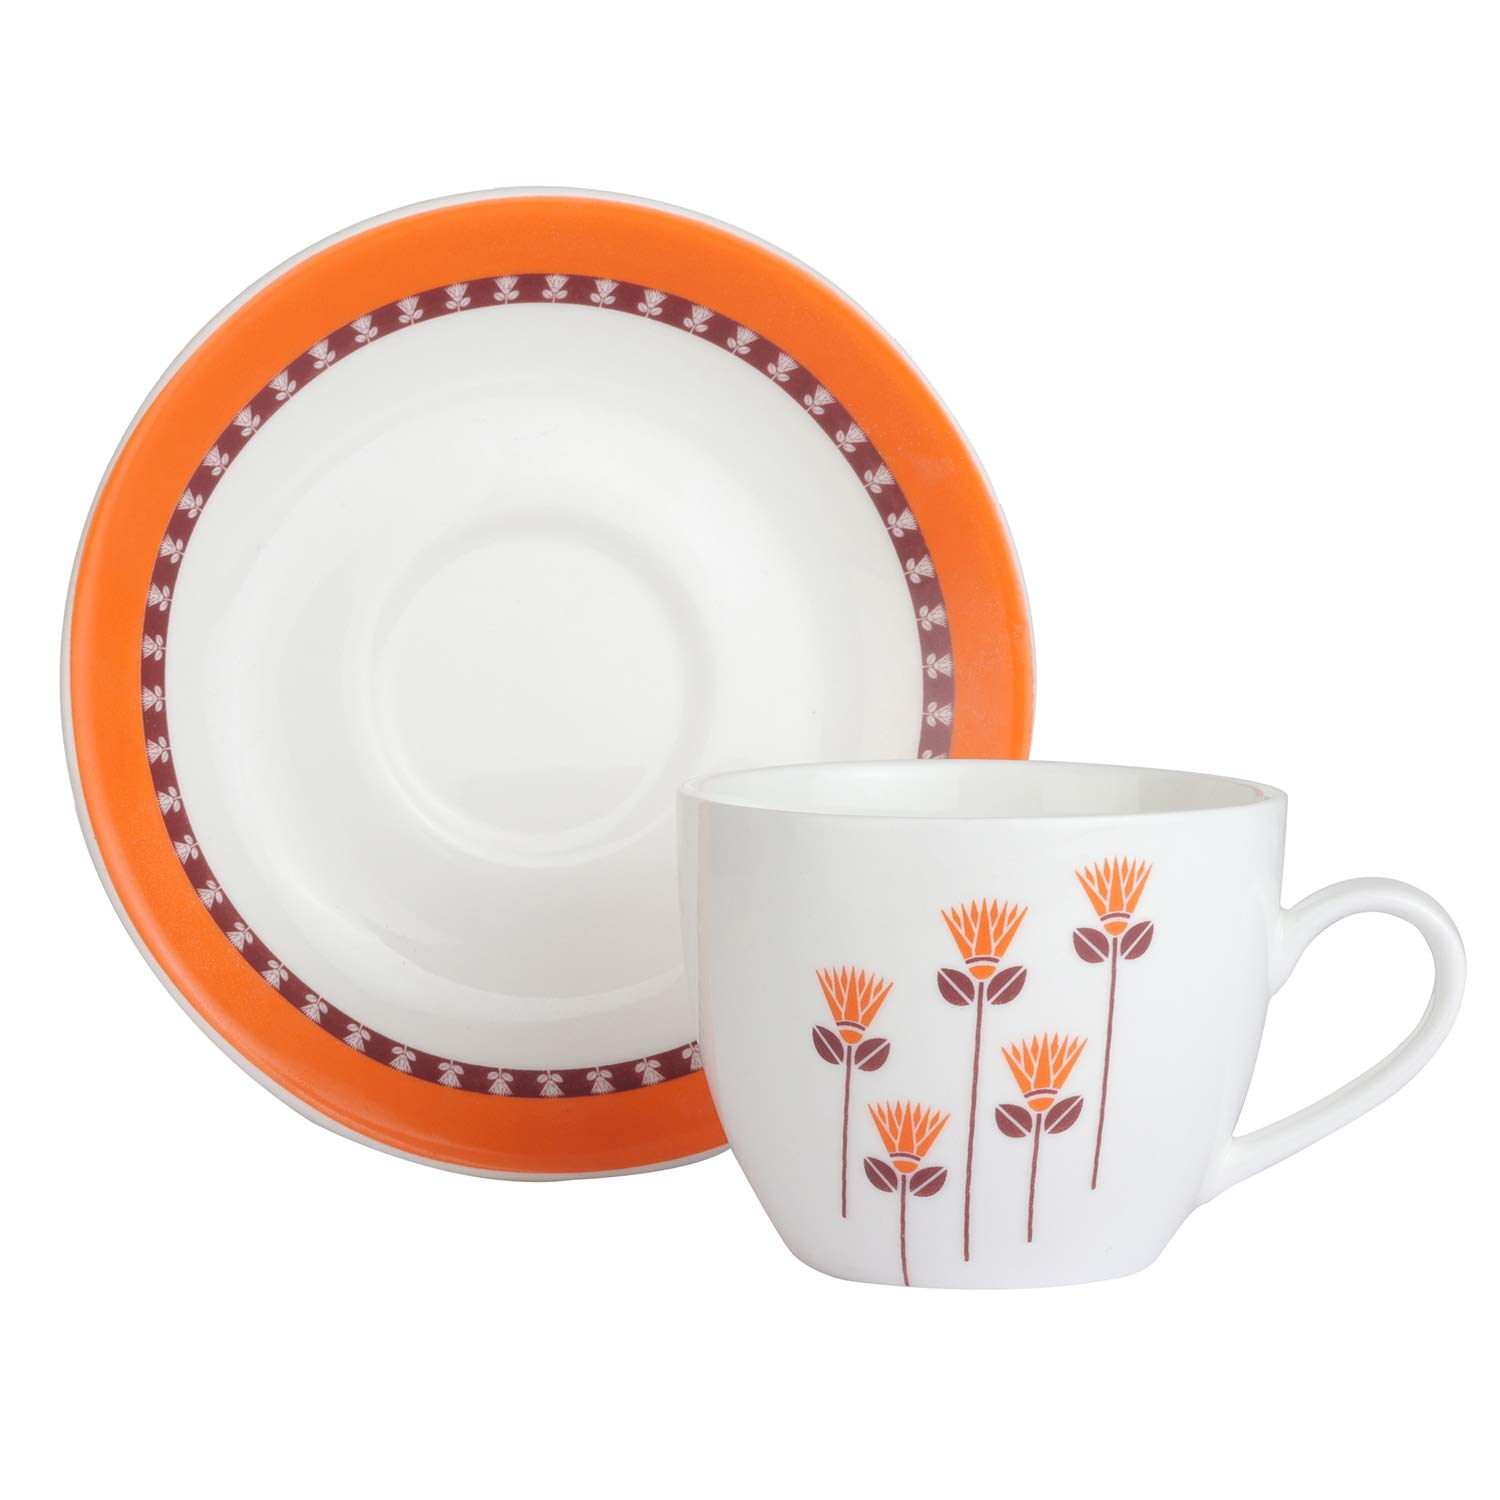 Femora Bone China Saffron Floral Tea Cups & Saucers Set of 12-200ML